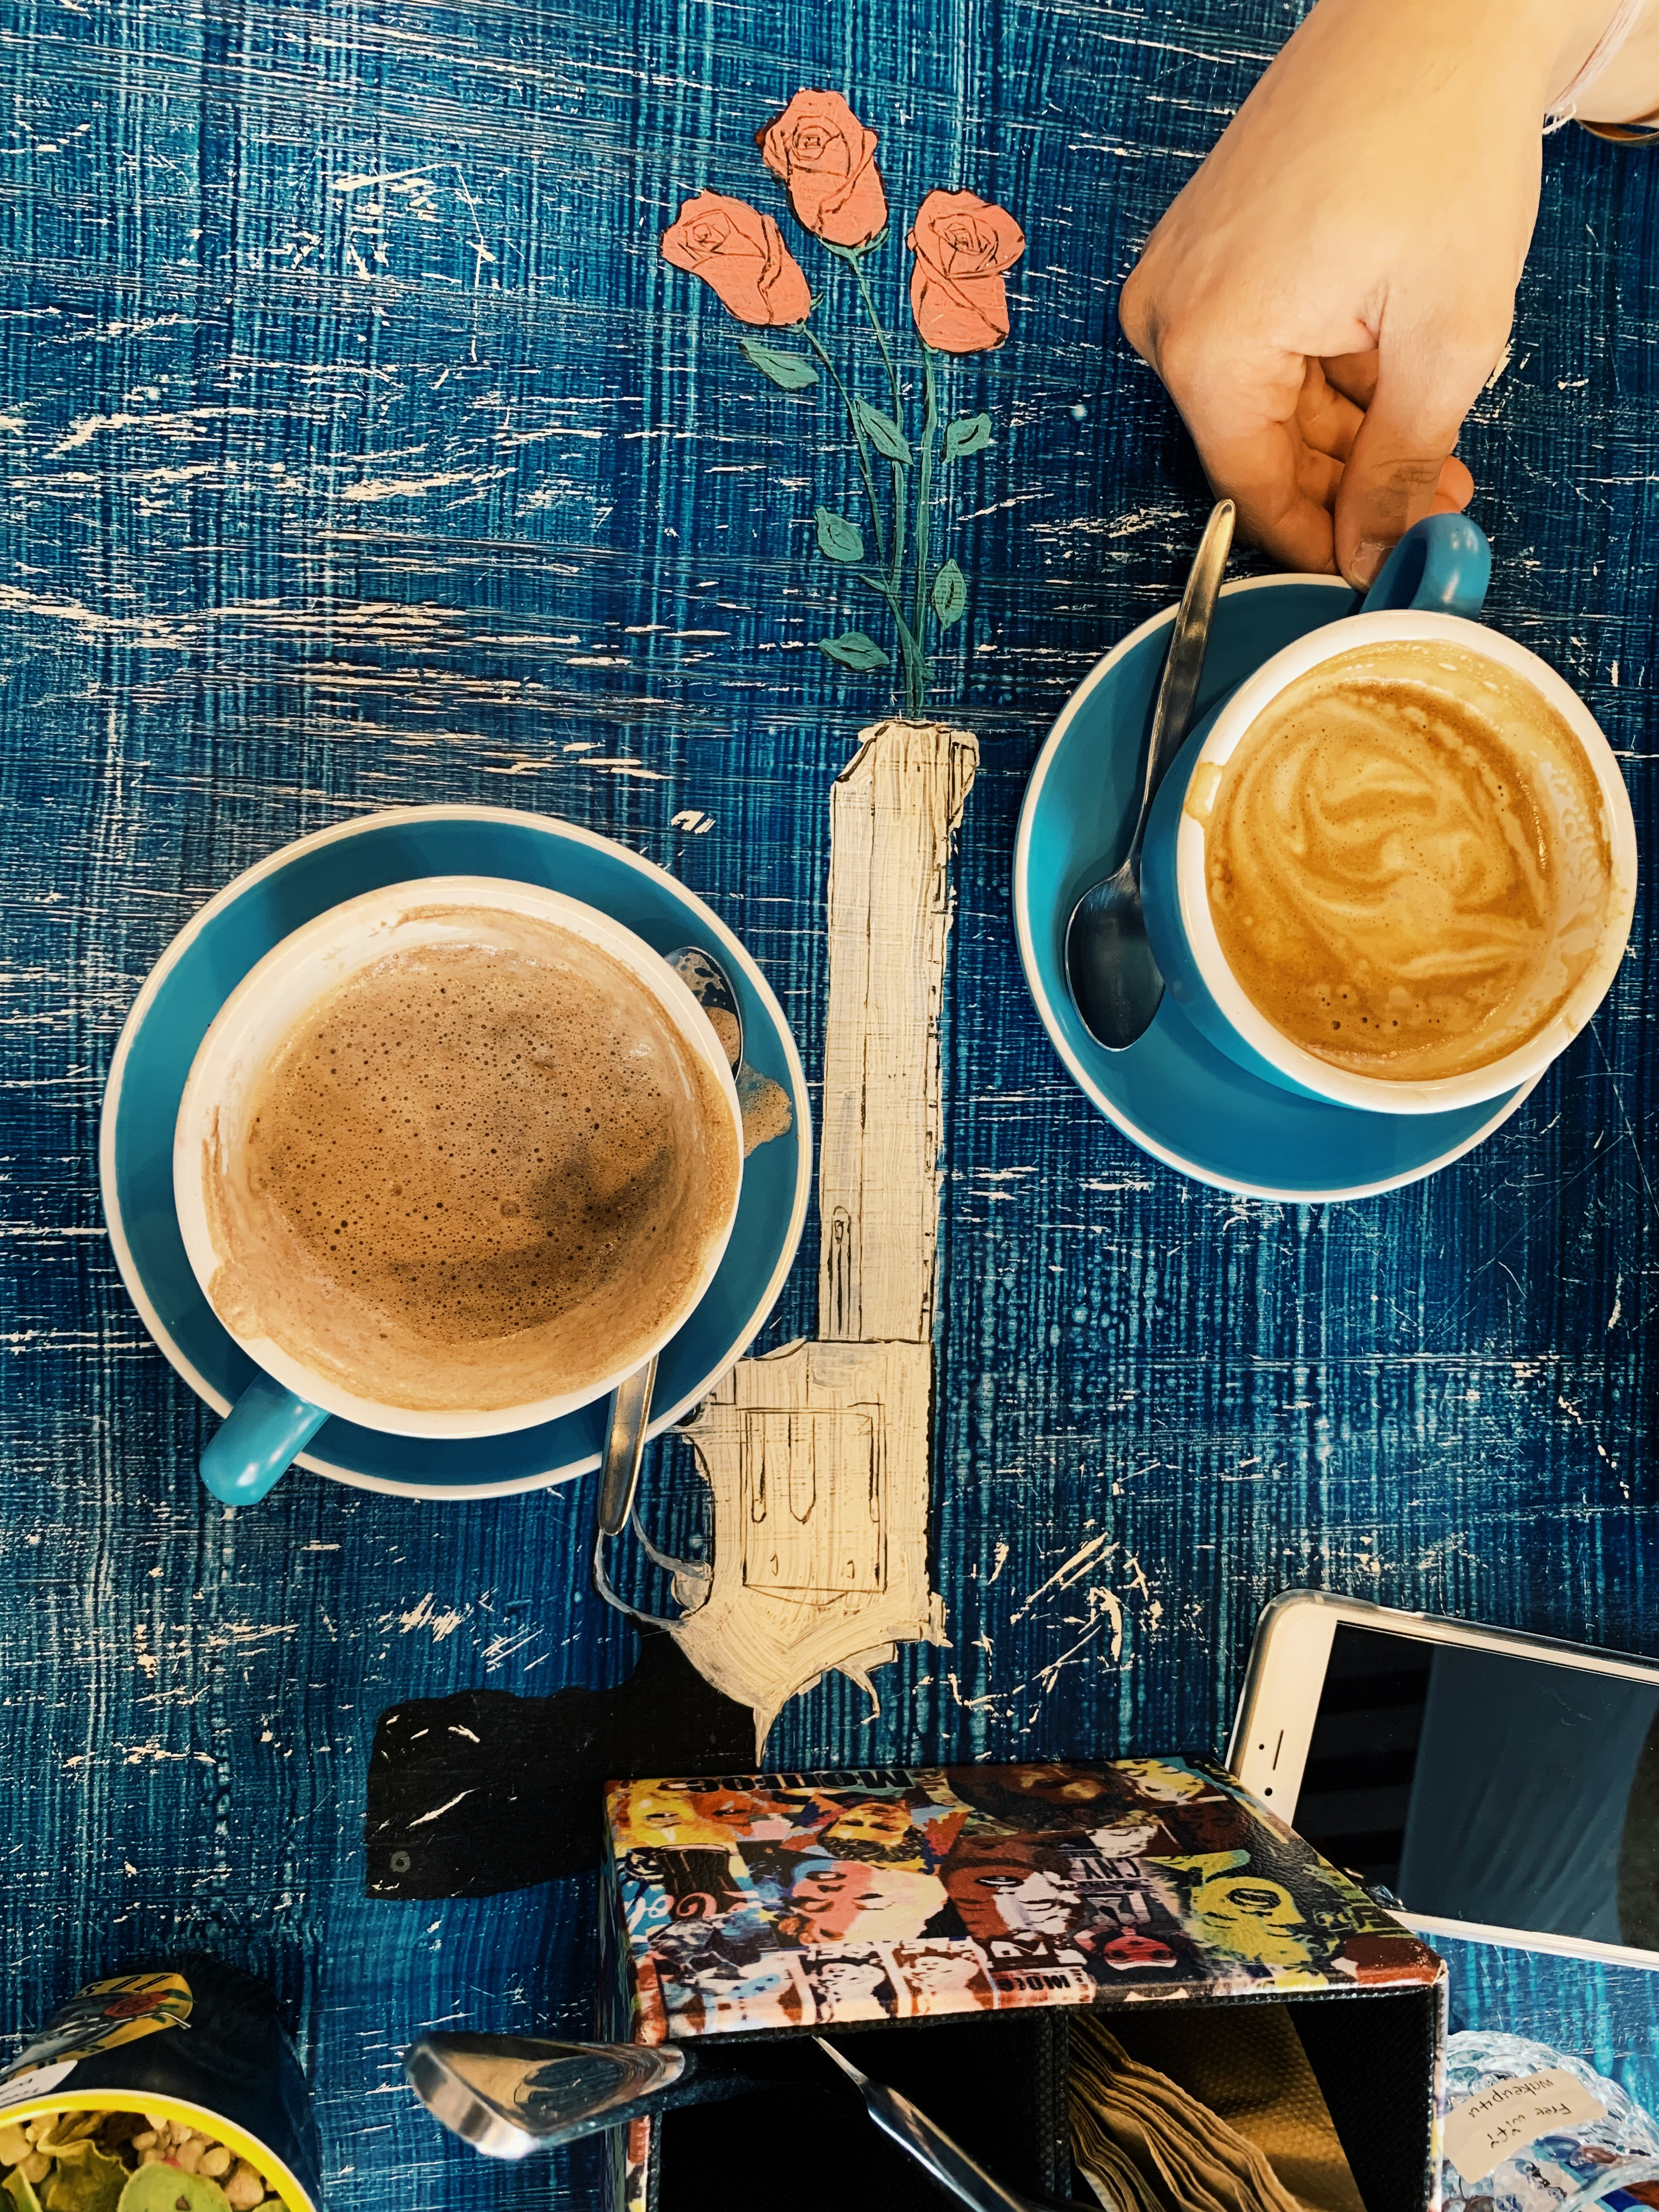 Wake_up_cafe_parnell_auckland_nz_11